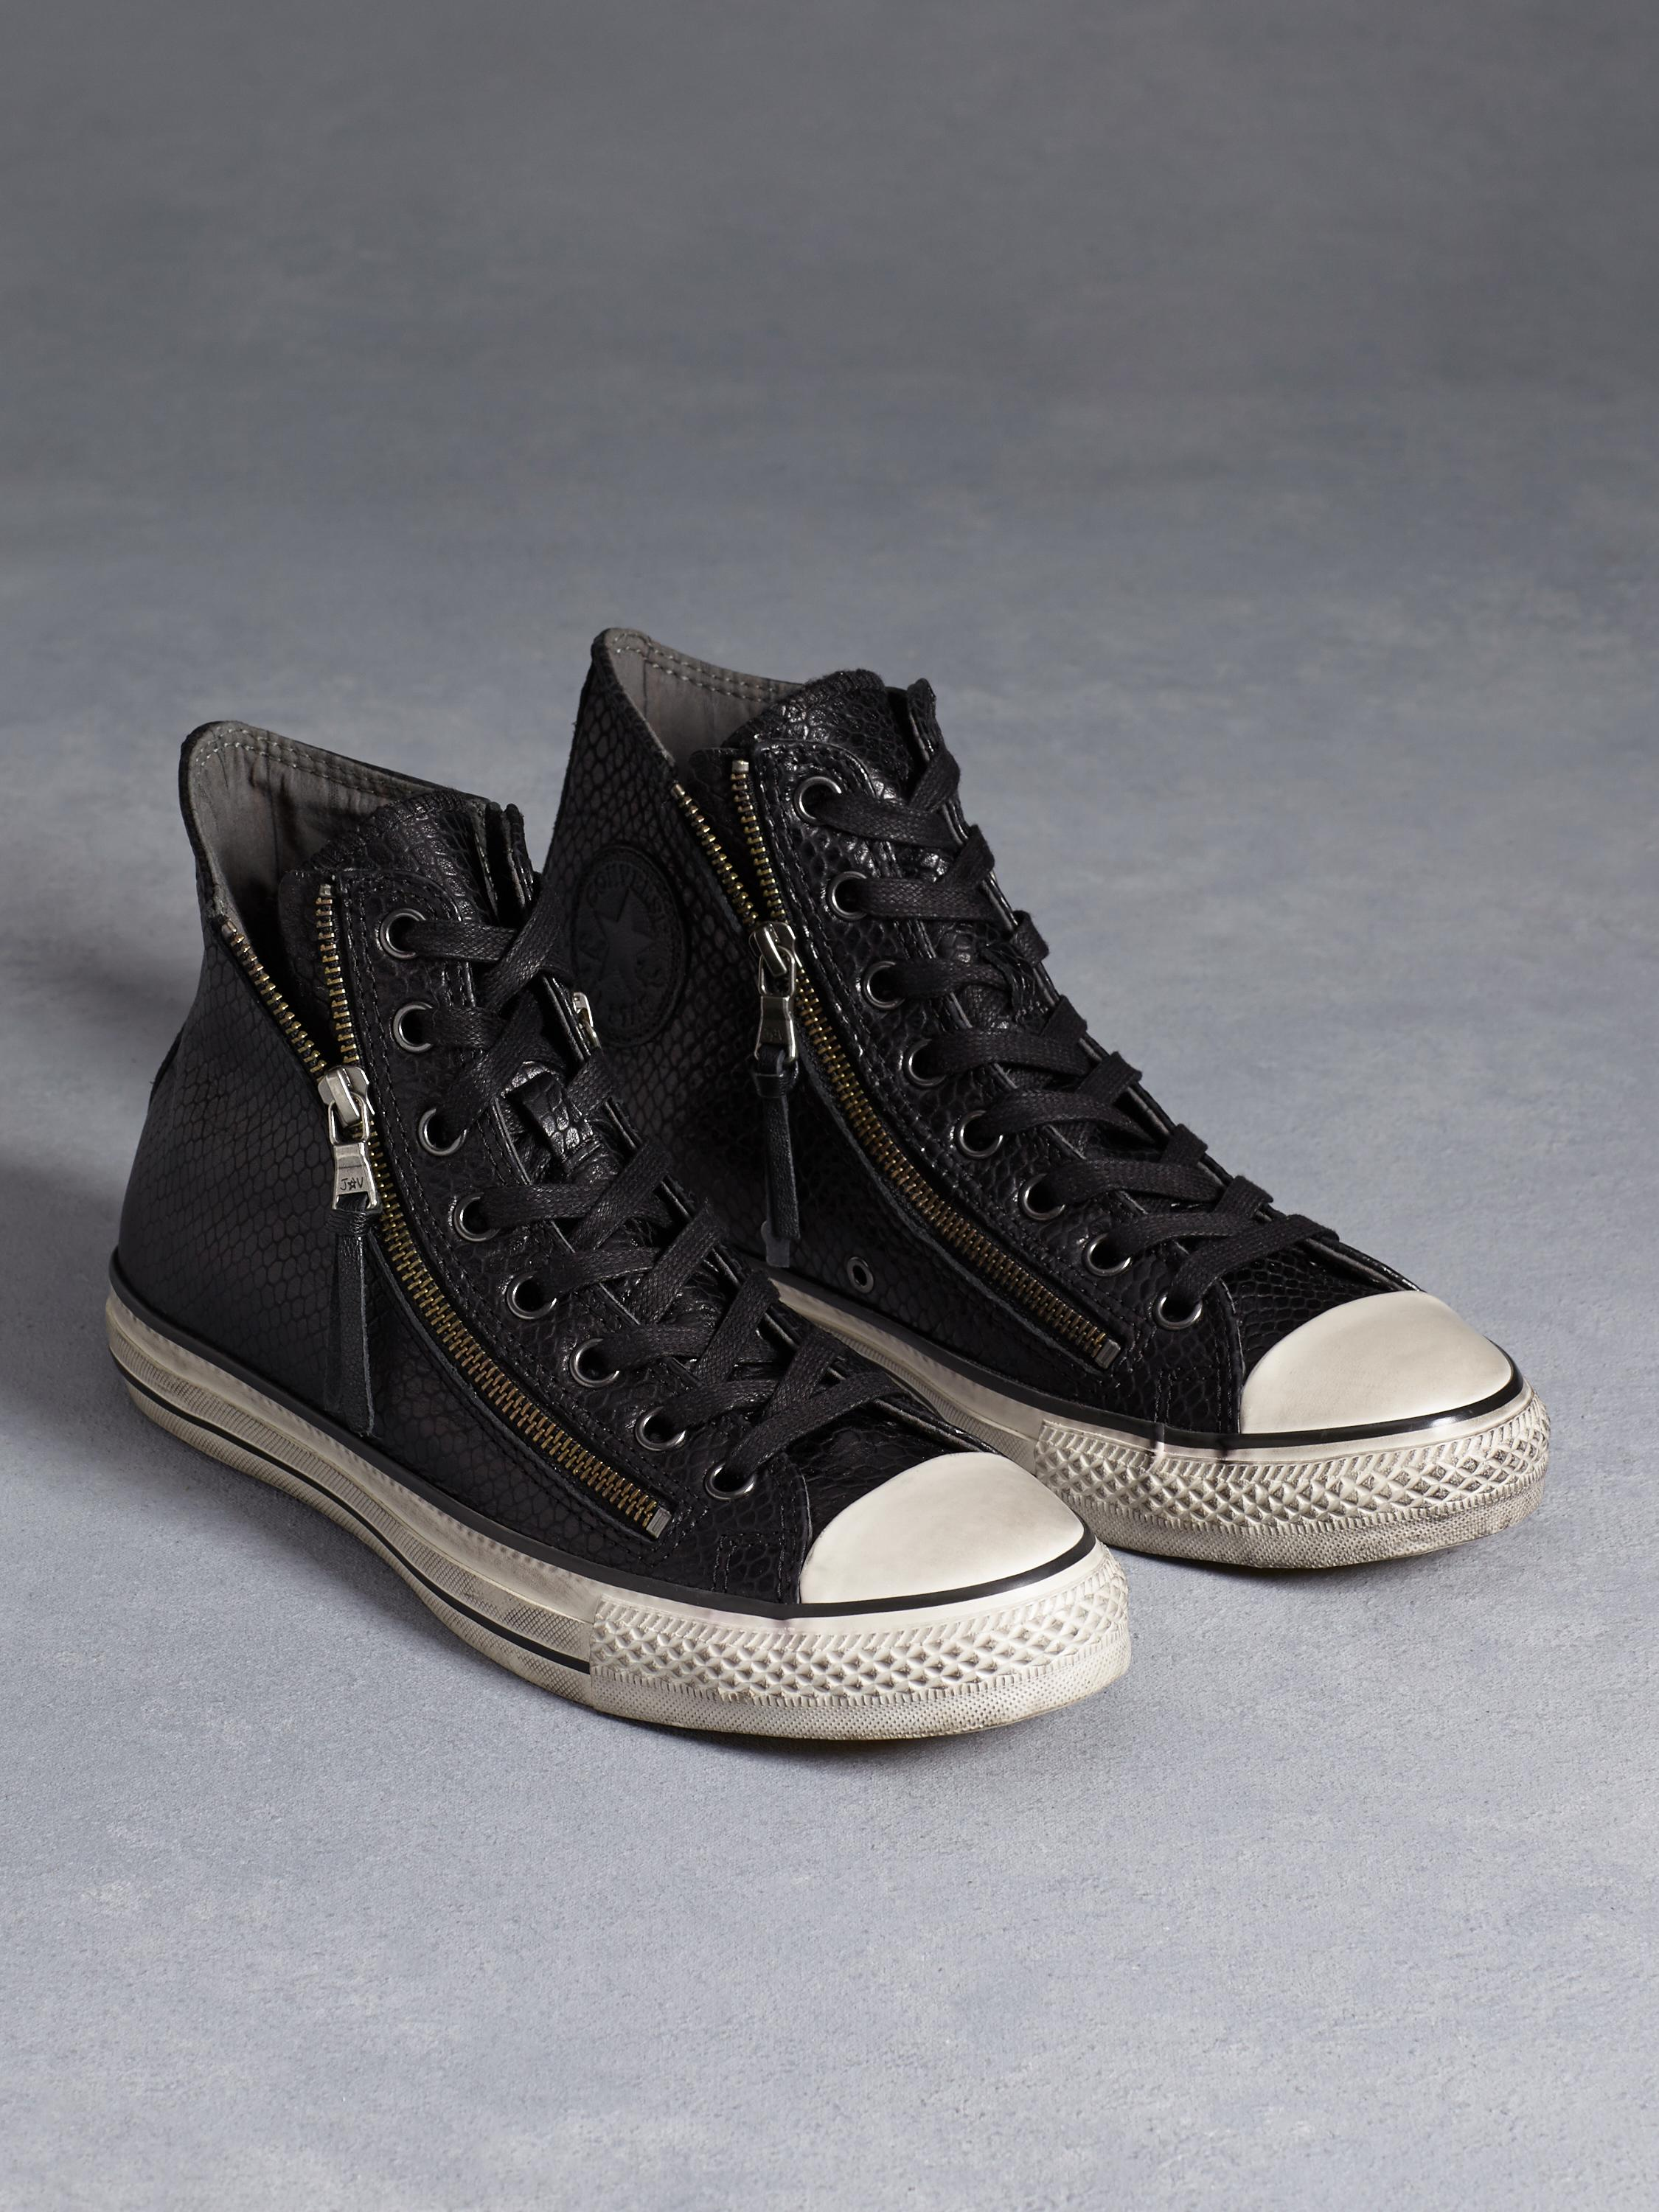 cde0ceec2d71 BLACK SNAKE ALL STAR LEATHER DOUBLE ZIP - John Varvatos